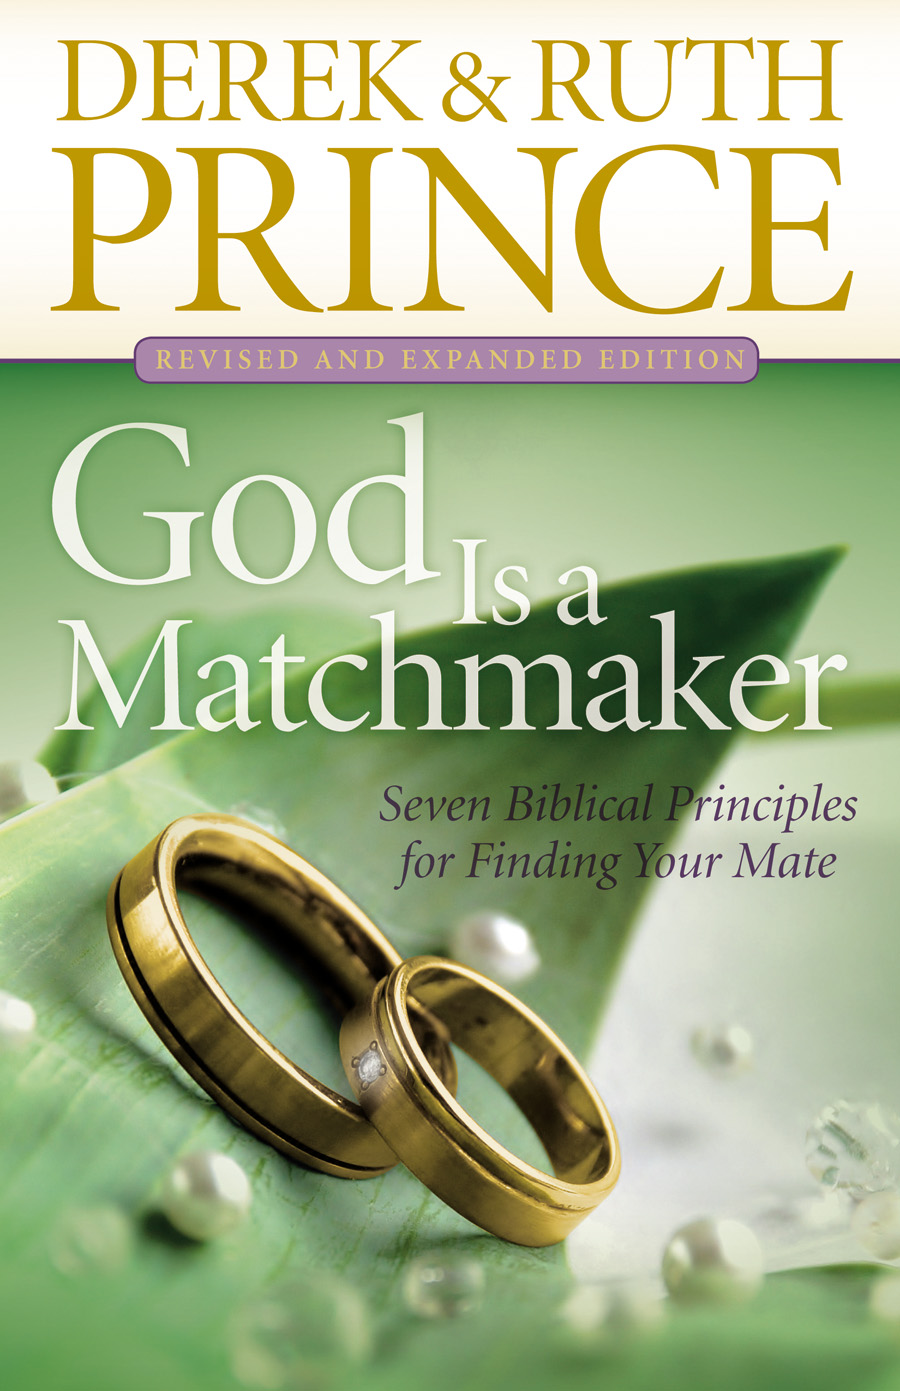 God Is a Matchmaker, Revised and Expanded Edition | Baker Publishing